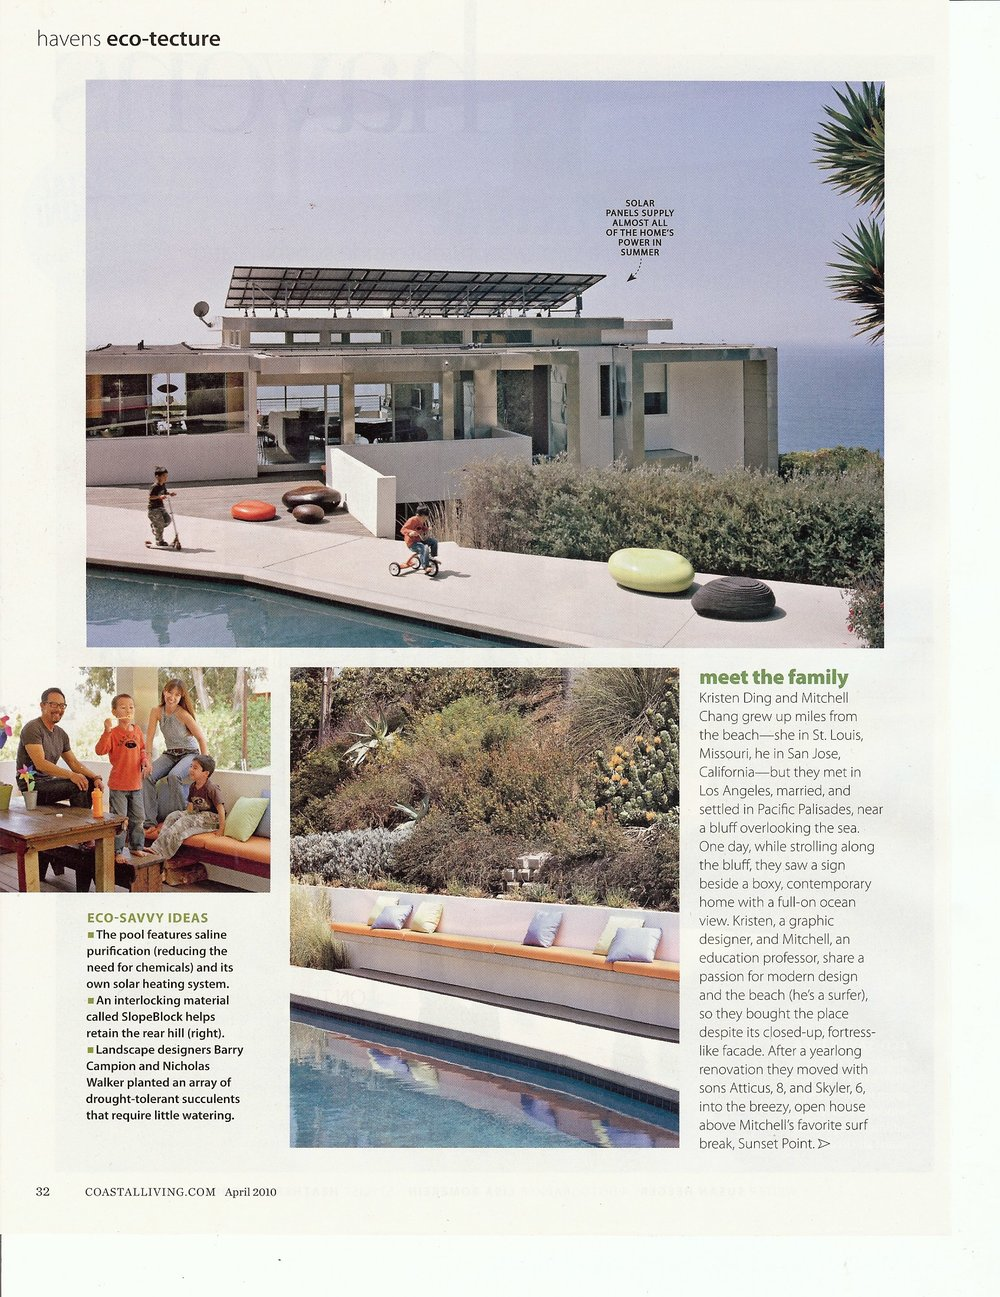 eisstudio_coastal living_Page_2.jpg